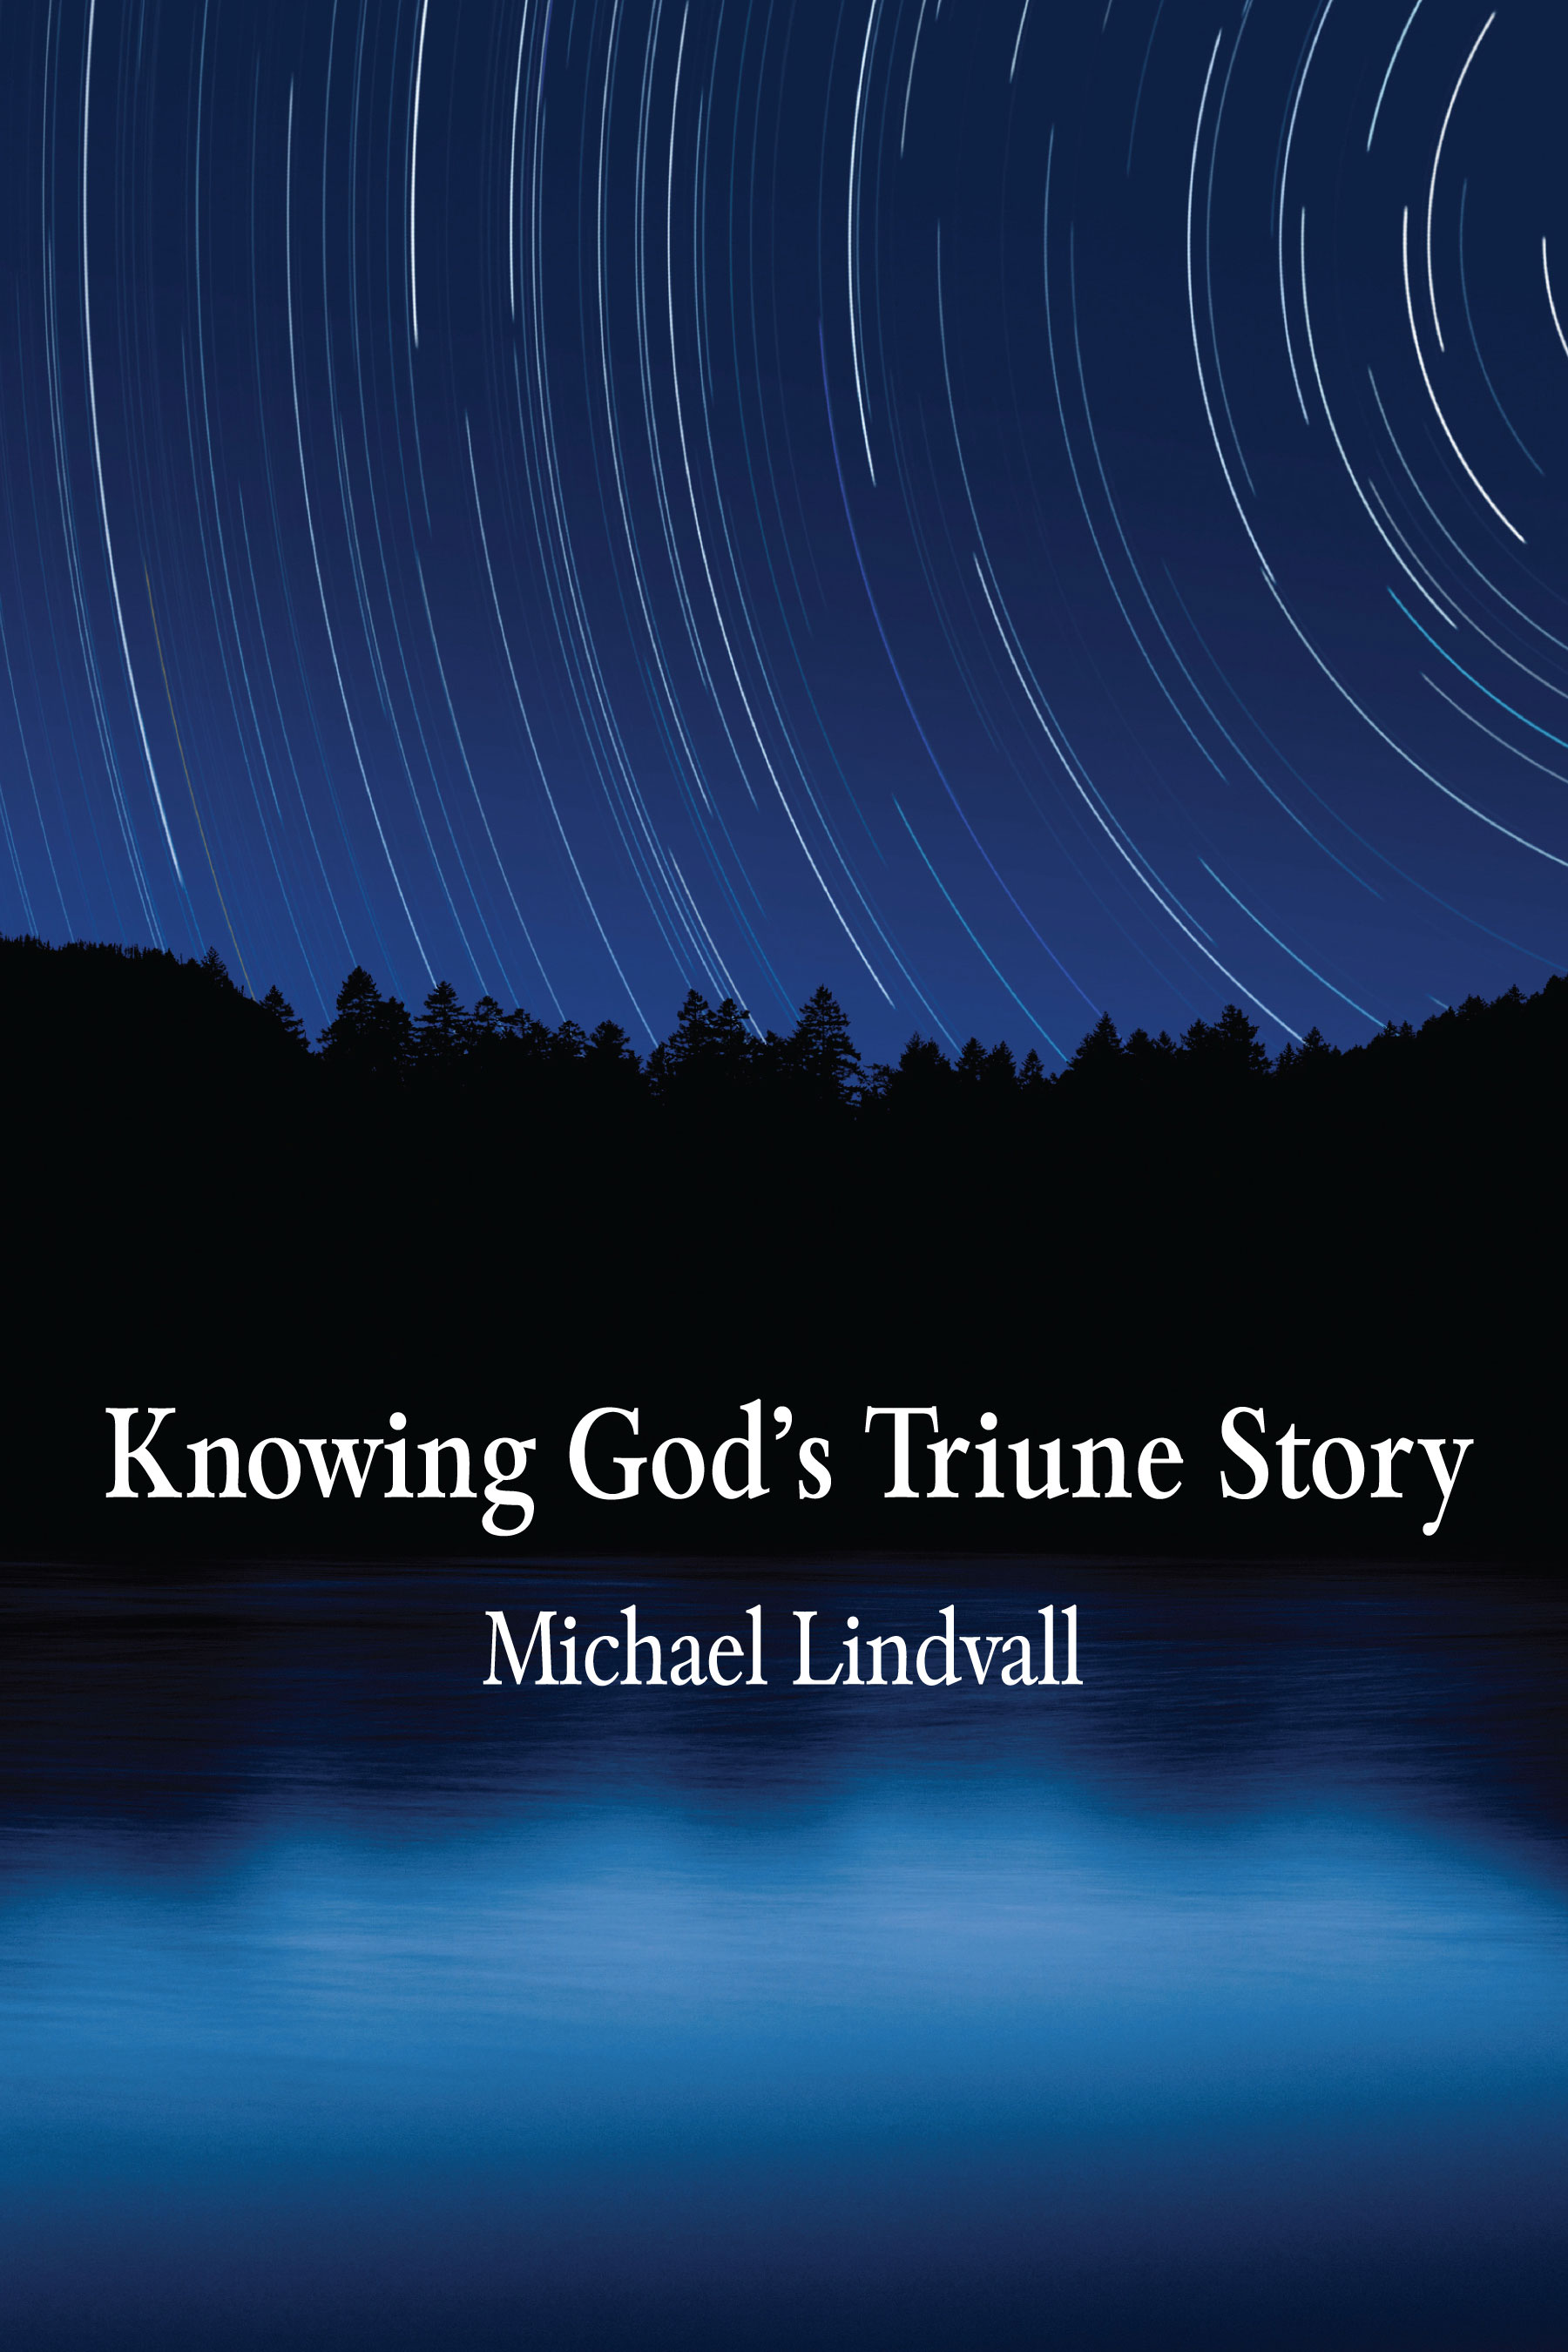 Knowing God's Triune Story